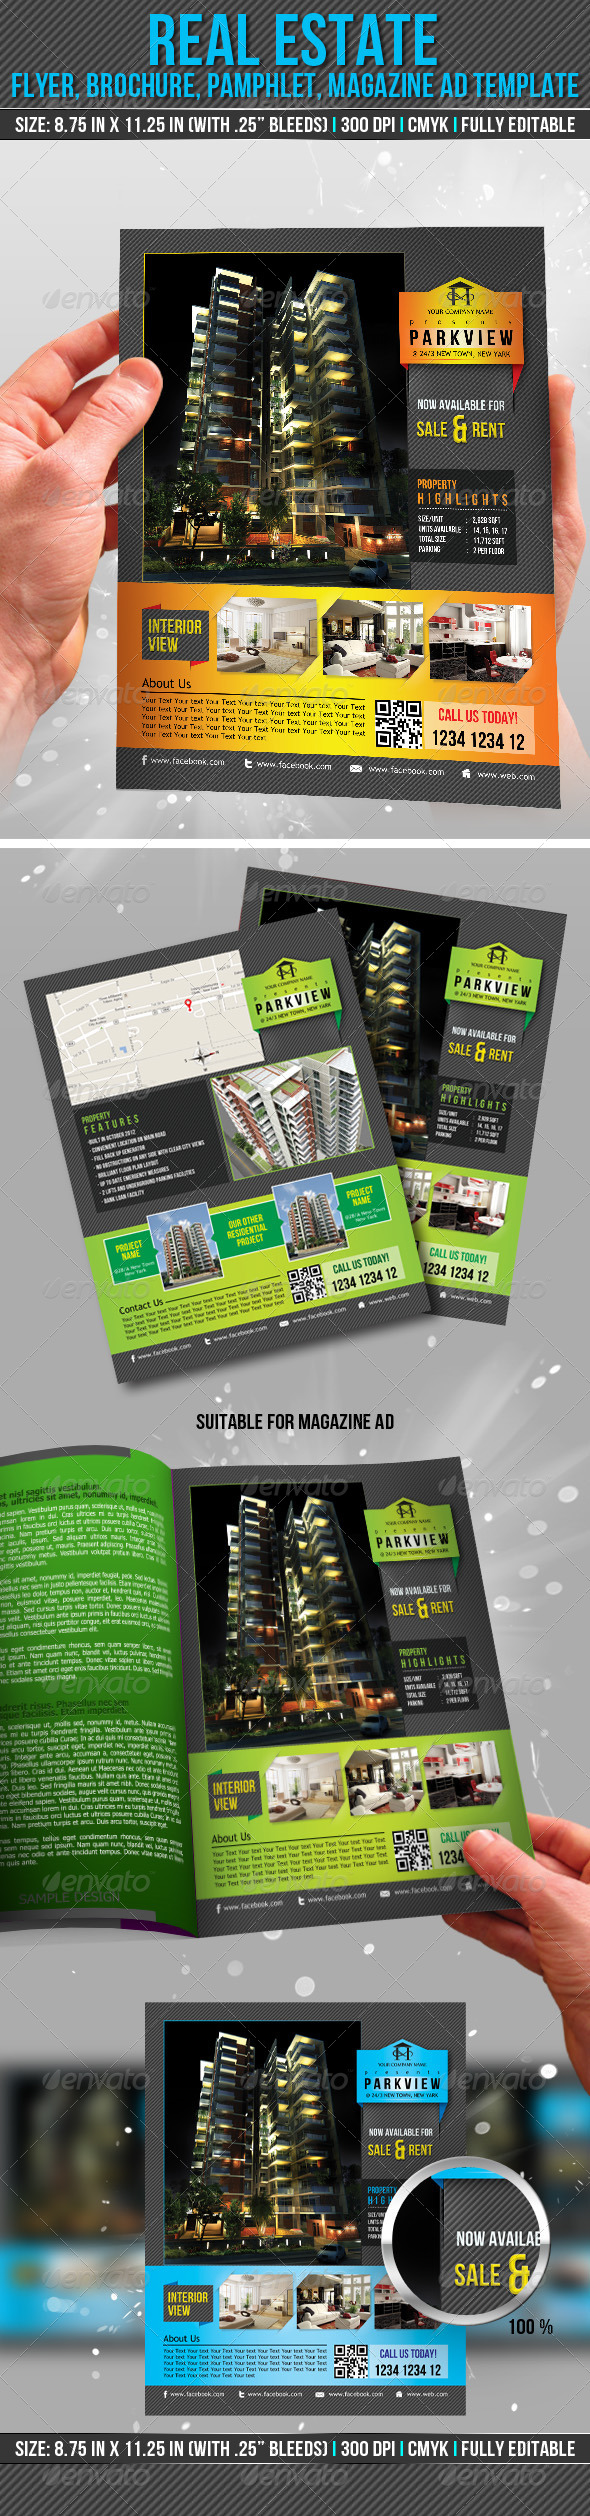 Real Estate Flyer, Brochure, Pamphlet, Magazine Ad - Print Templates